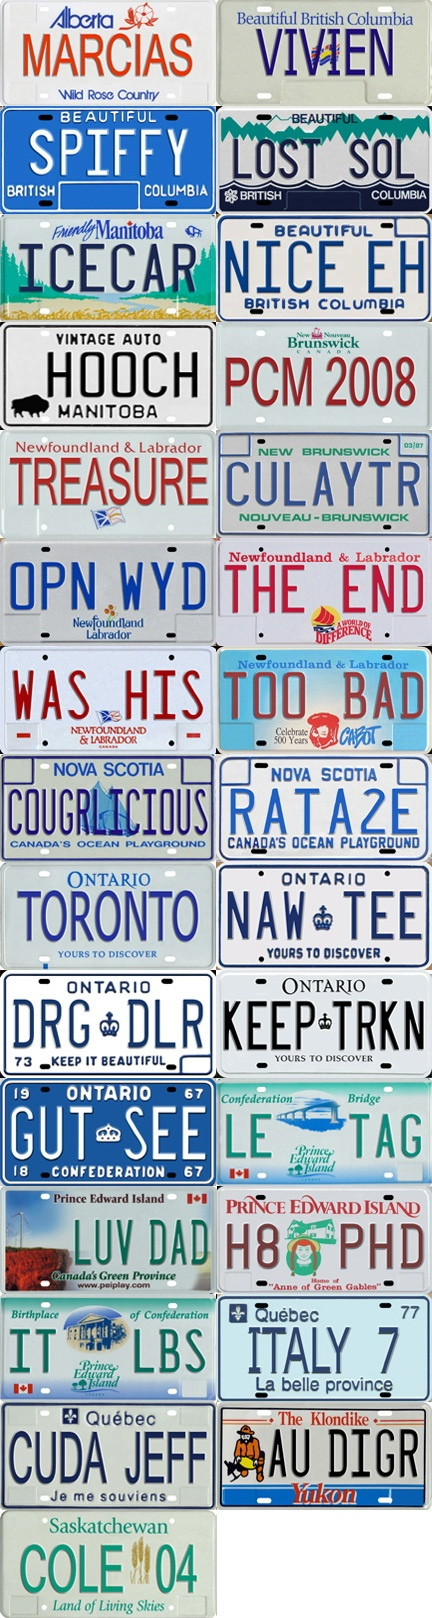 Plates from various Canadian provinces